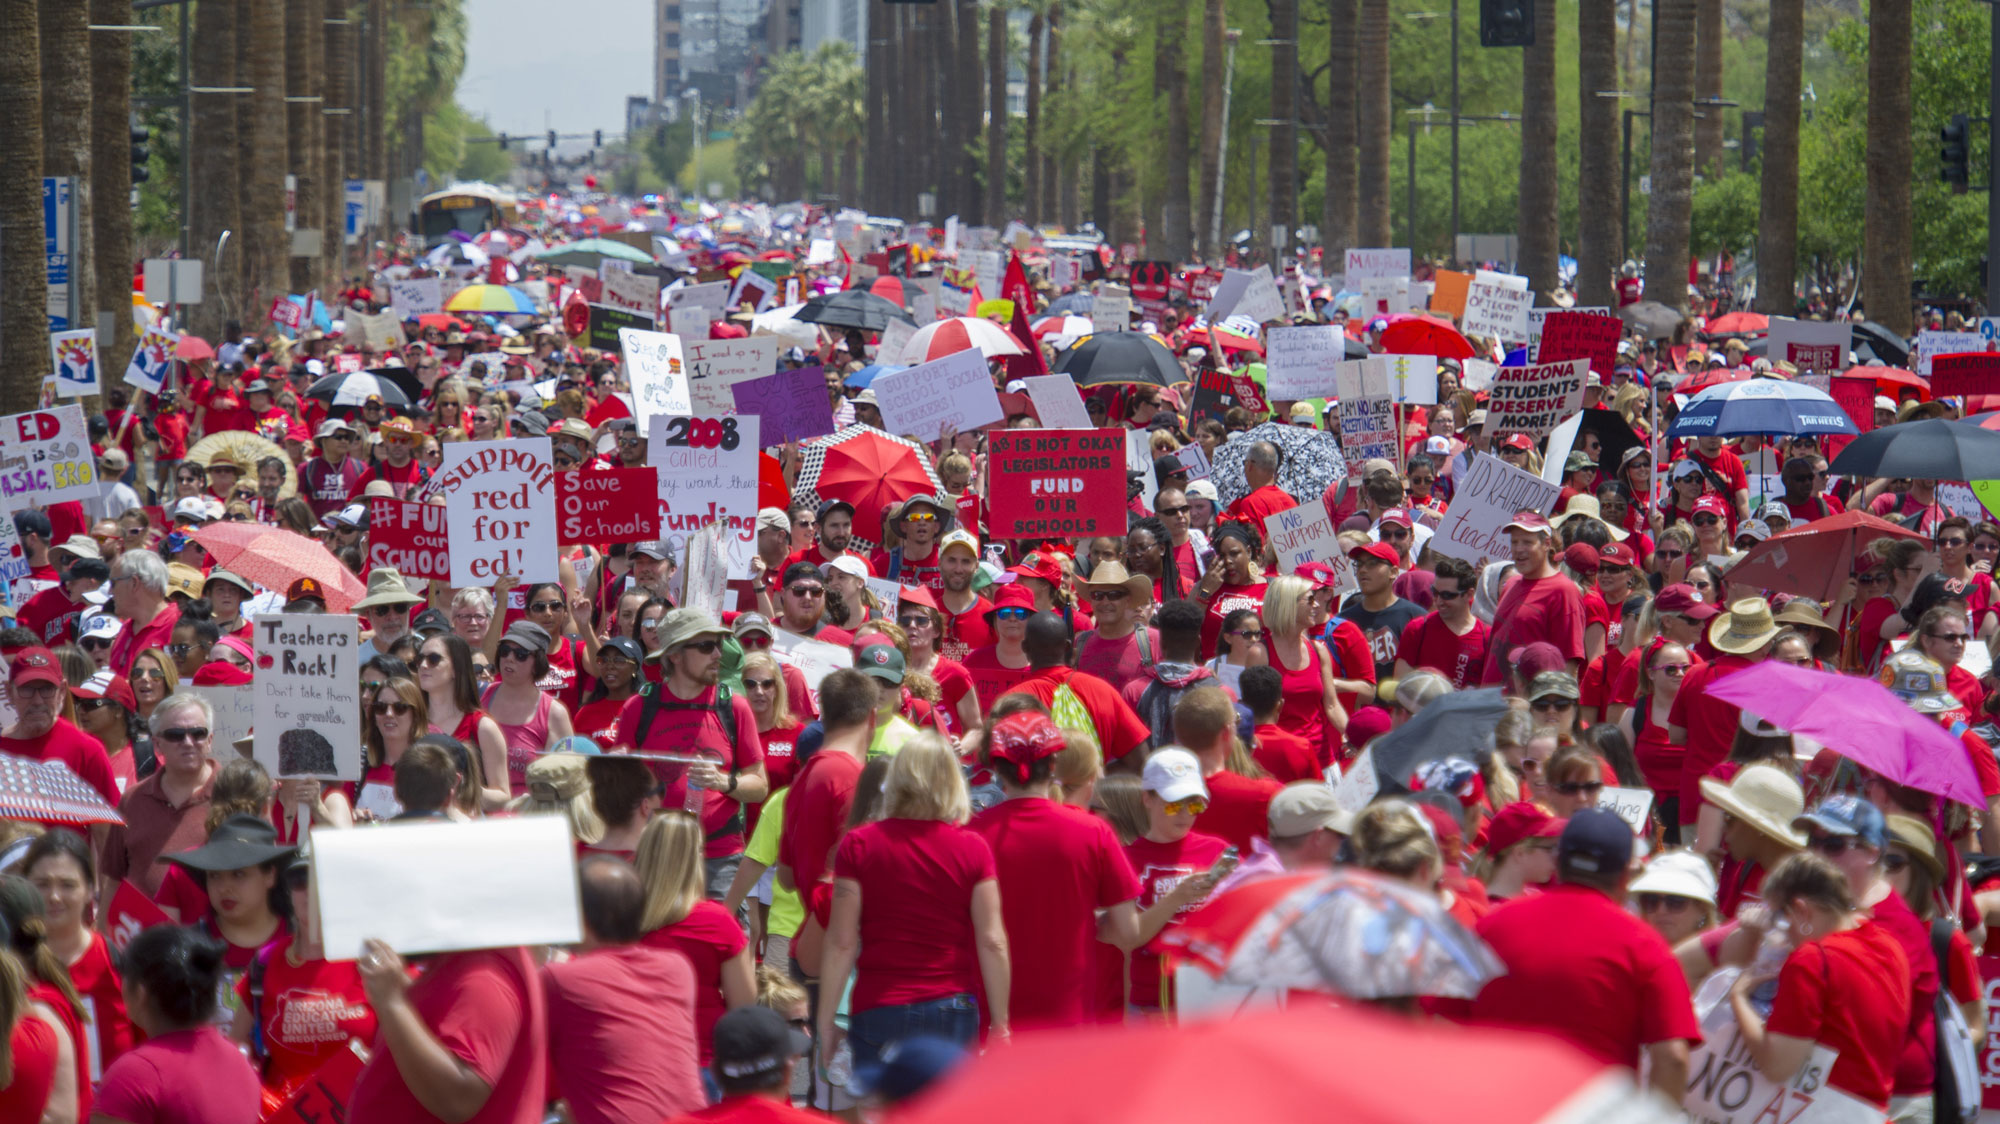 1 day after Ducey announces deal, teachers rally along Phoenix street